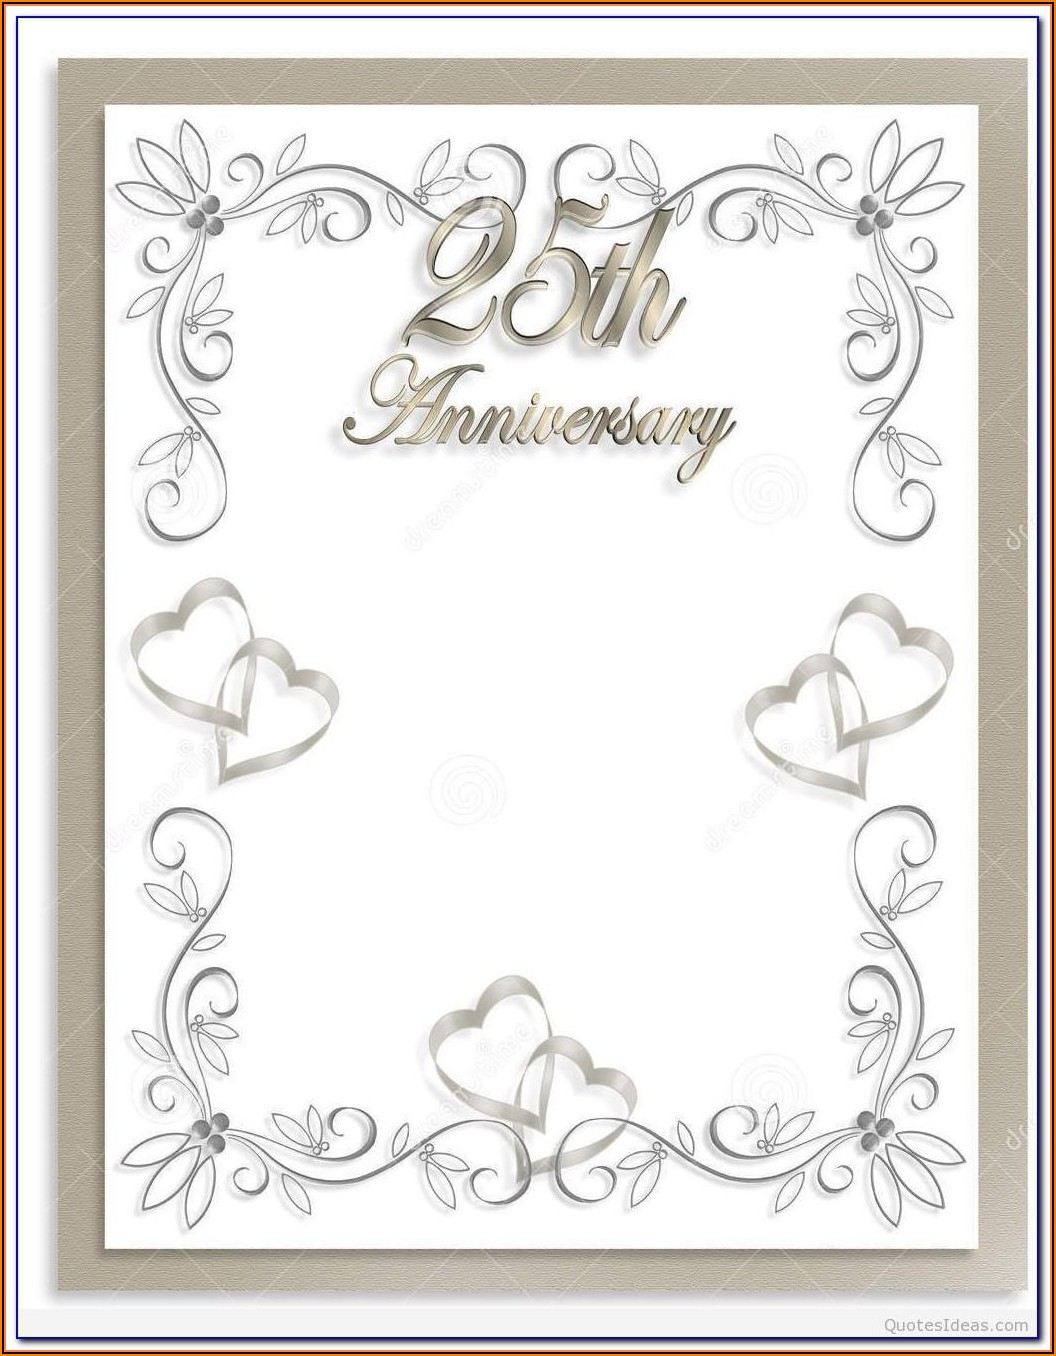 25th Wedding Anniversary Certificate Template